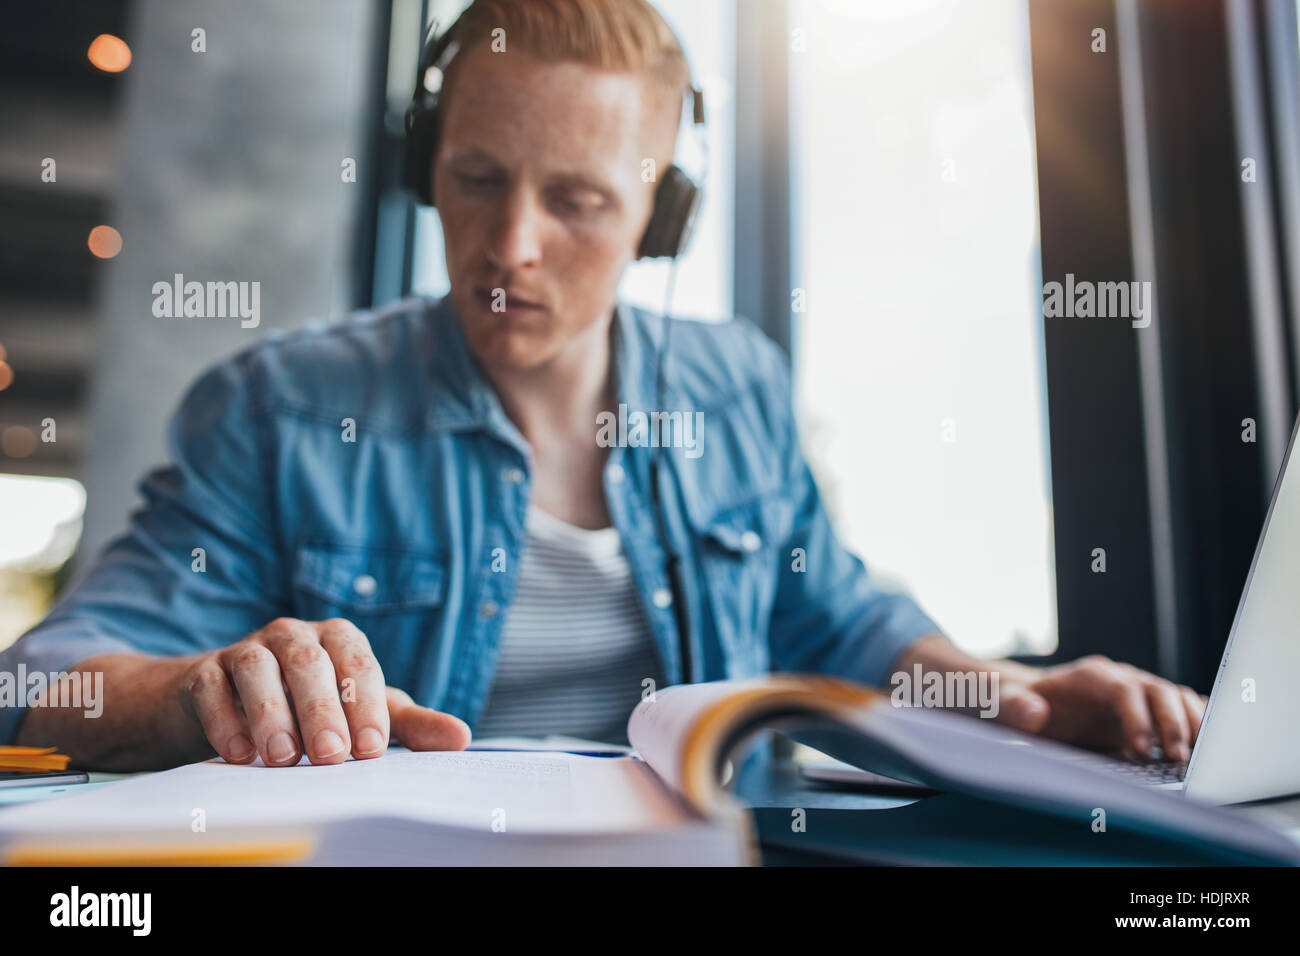 Young man sitting at table with books and laptop for finding information. Young male student studying in library - Stock Image